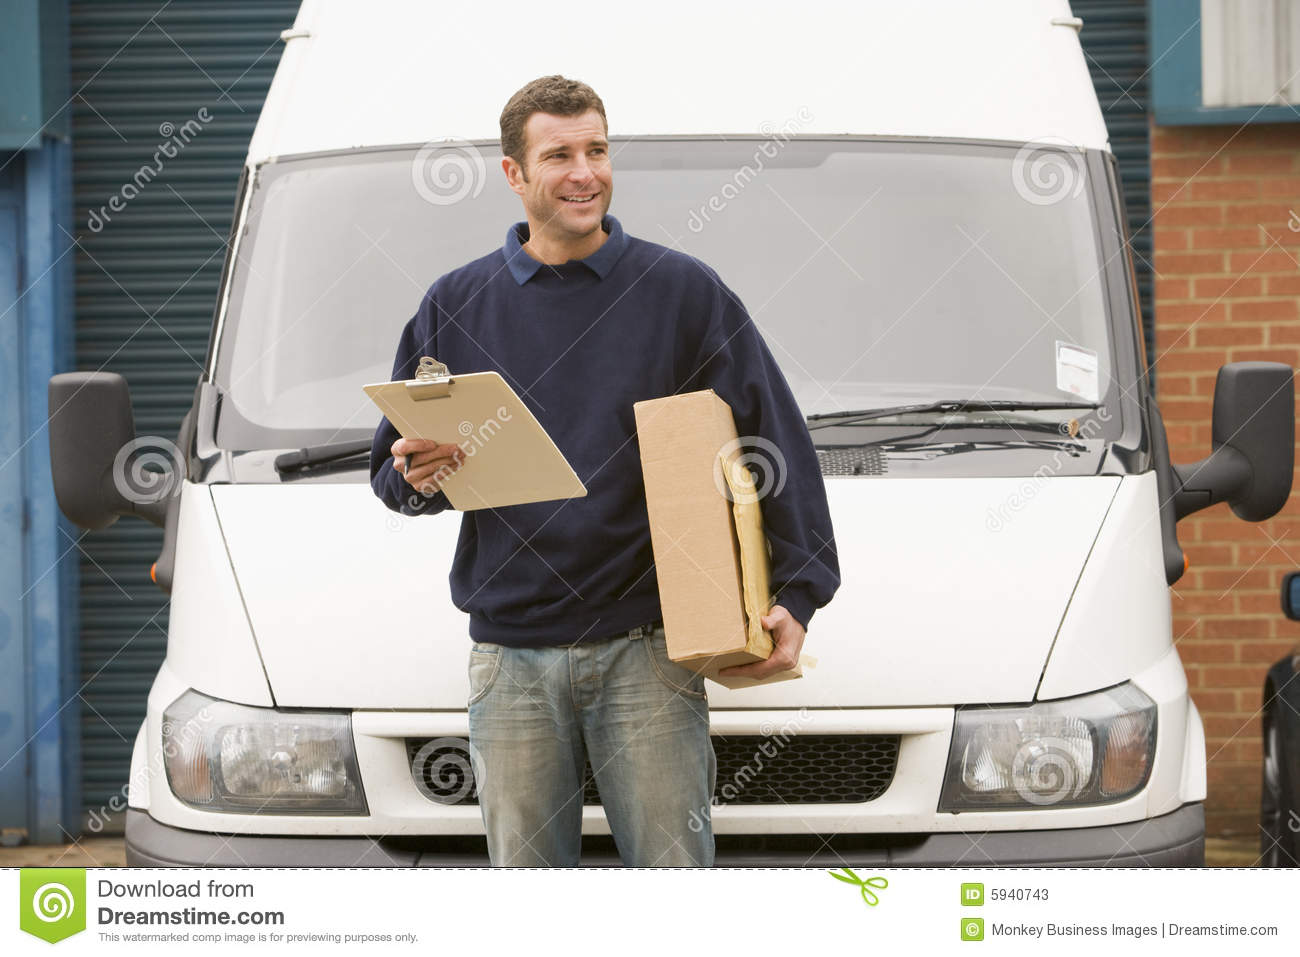 Delivery Person Standing With Parcel And Clipboard Stock Photos ...